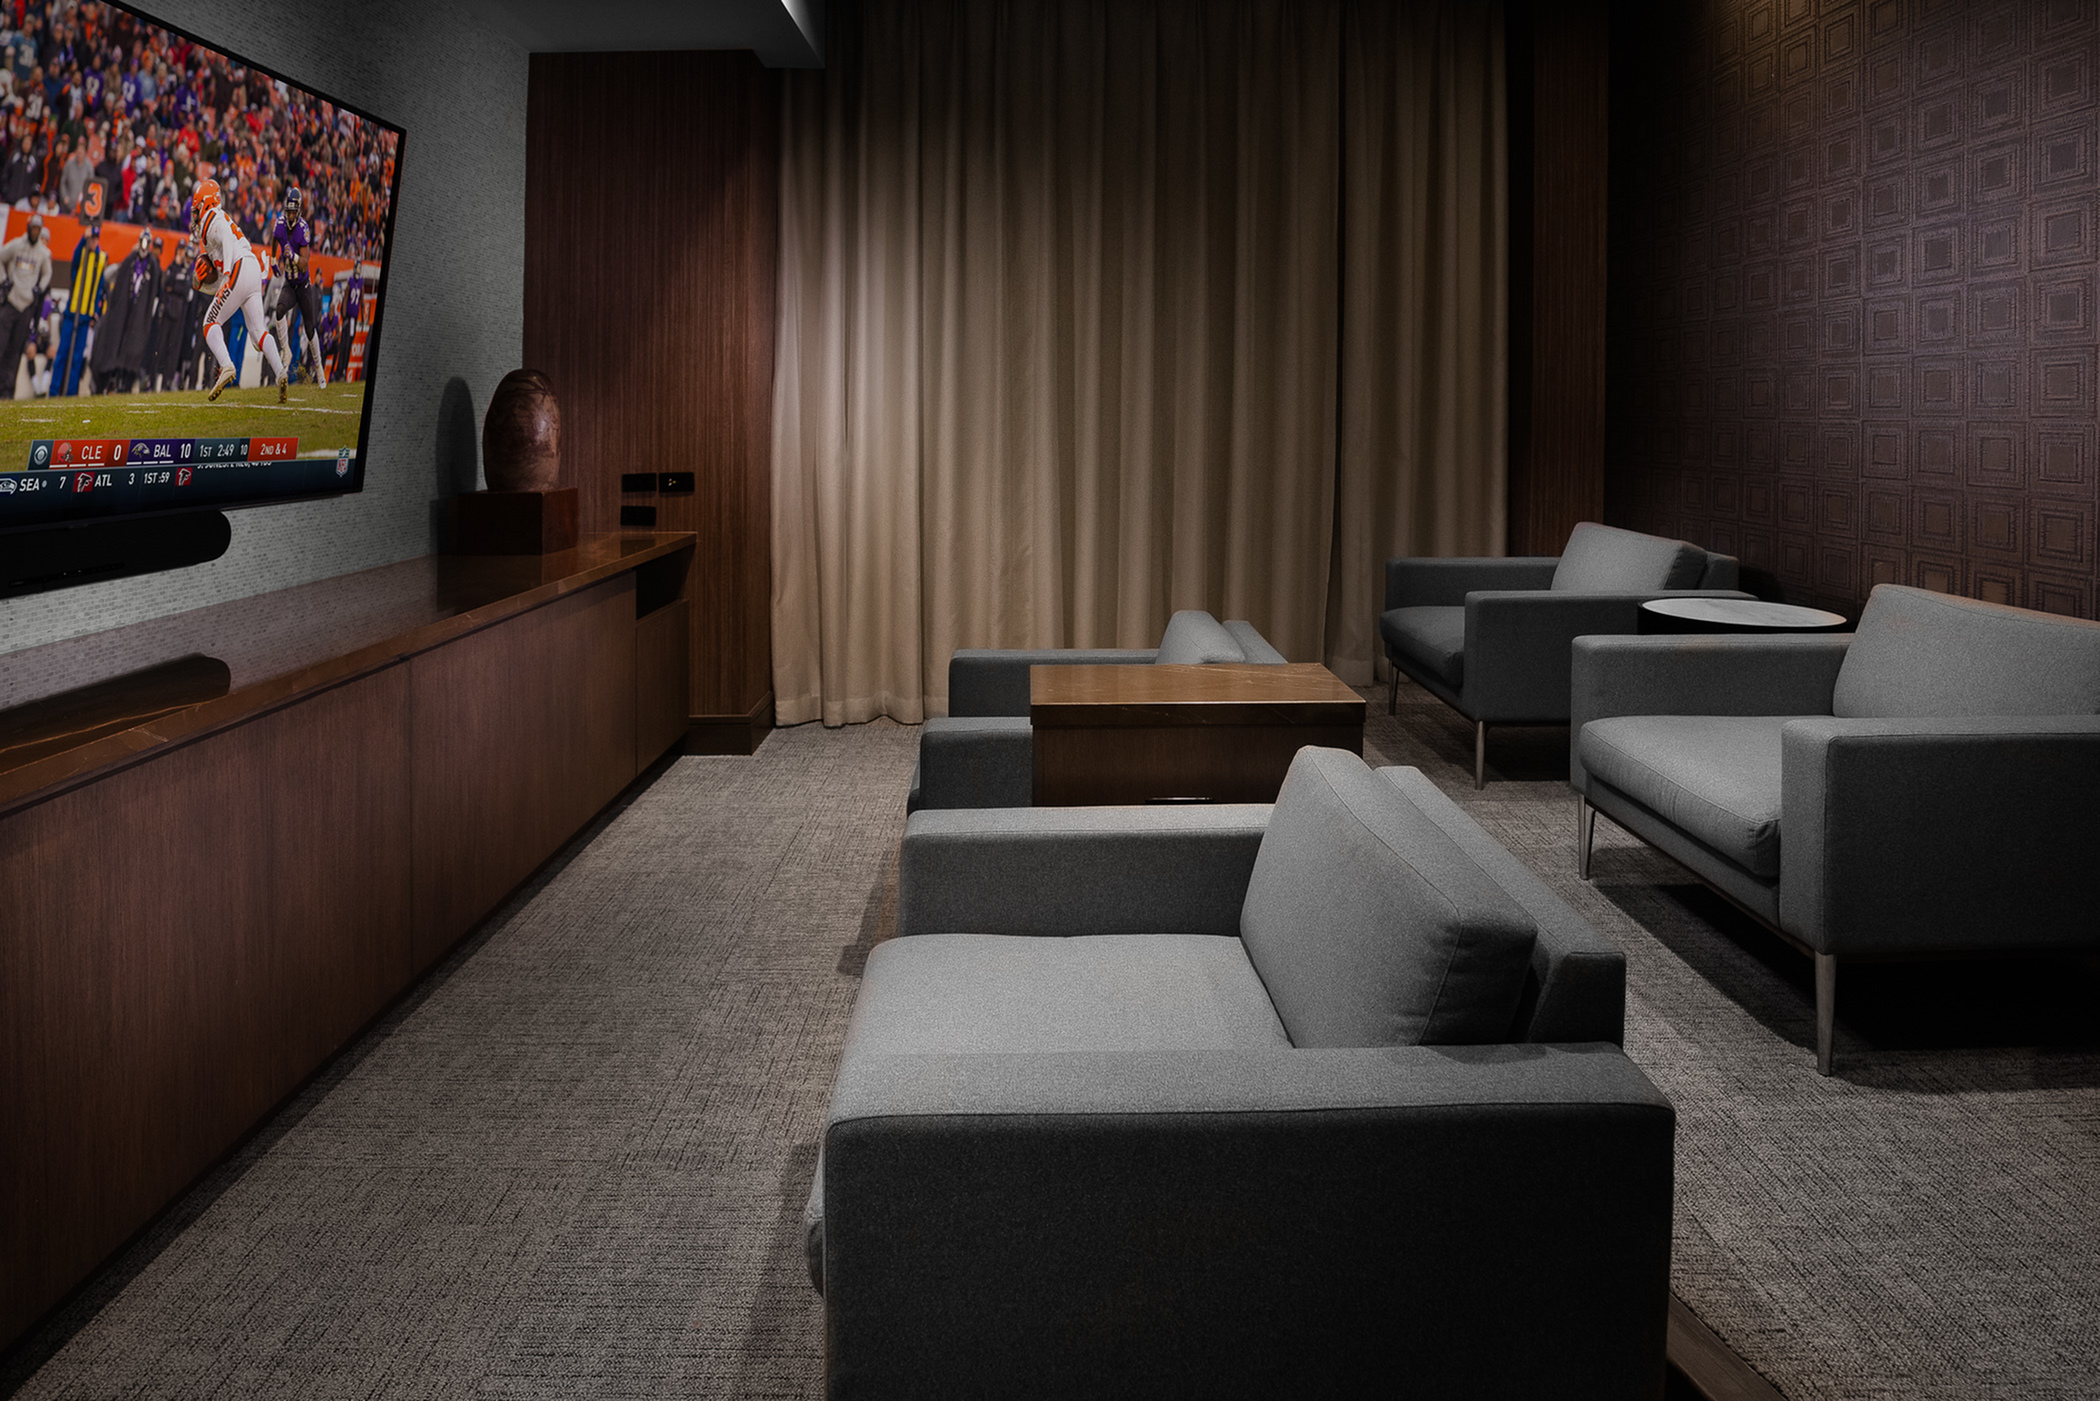 Media Room Featuring Surround-Sound and Smart TV at Hanover The LINC Brookhaven